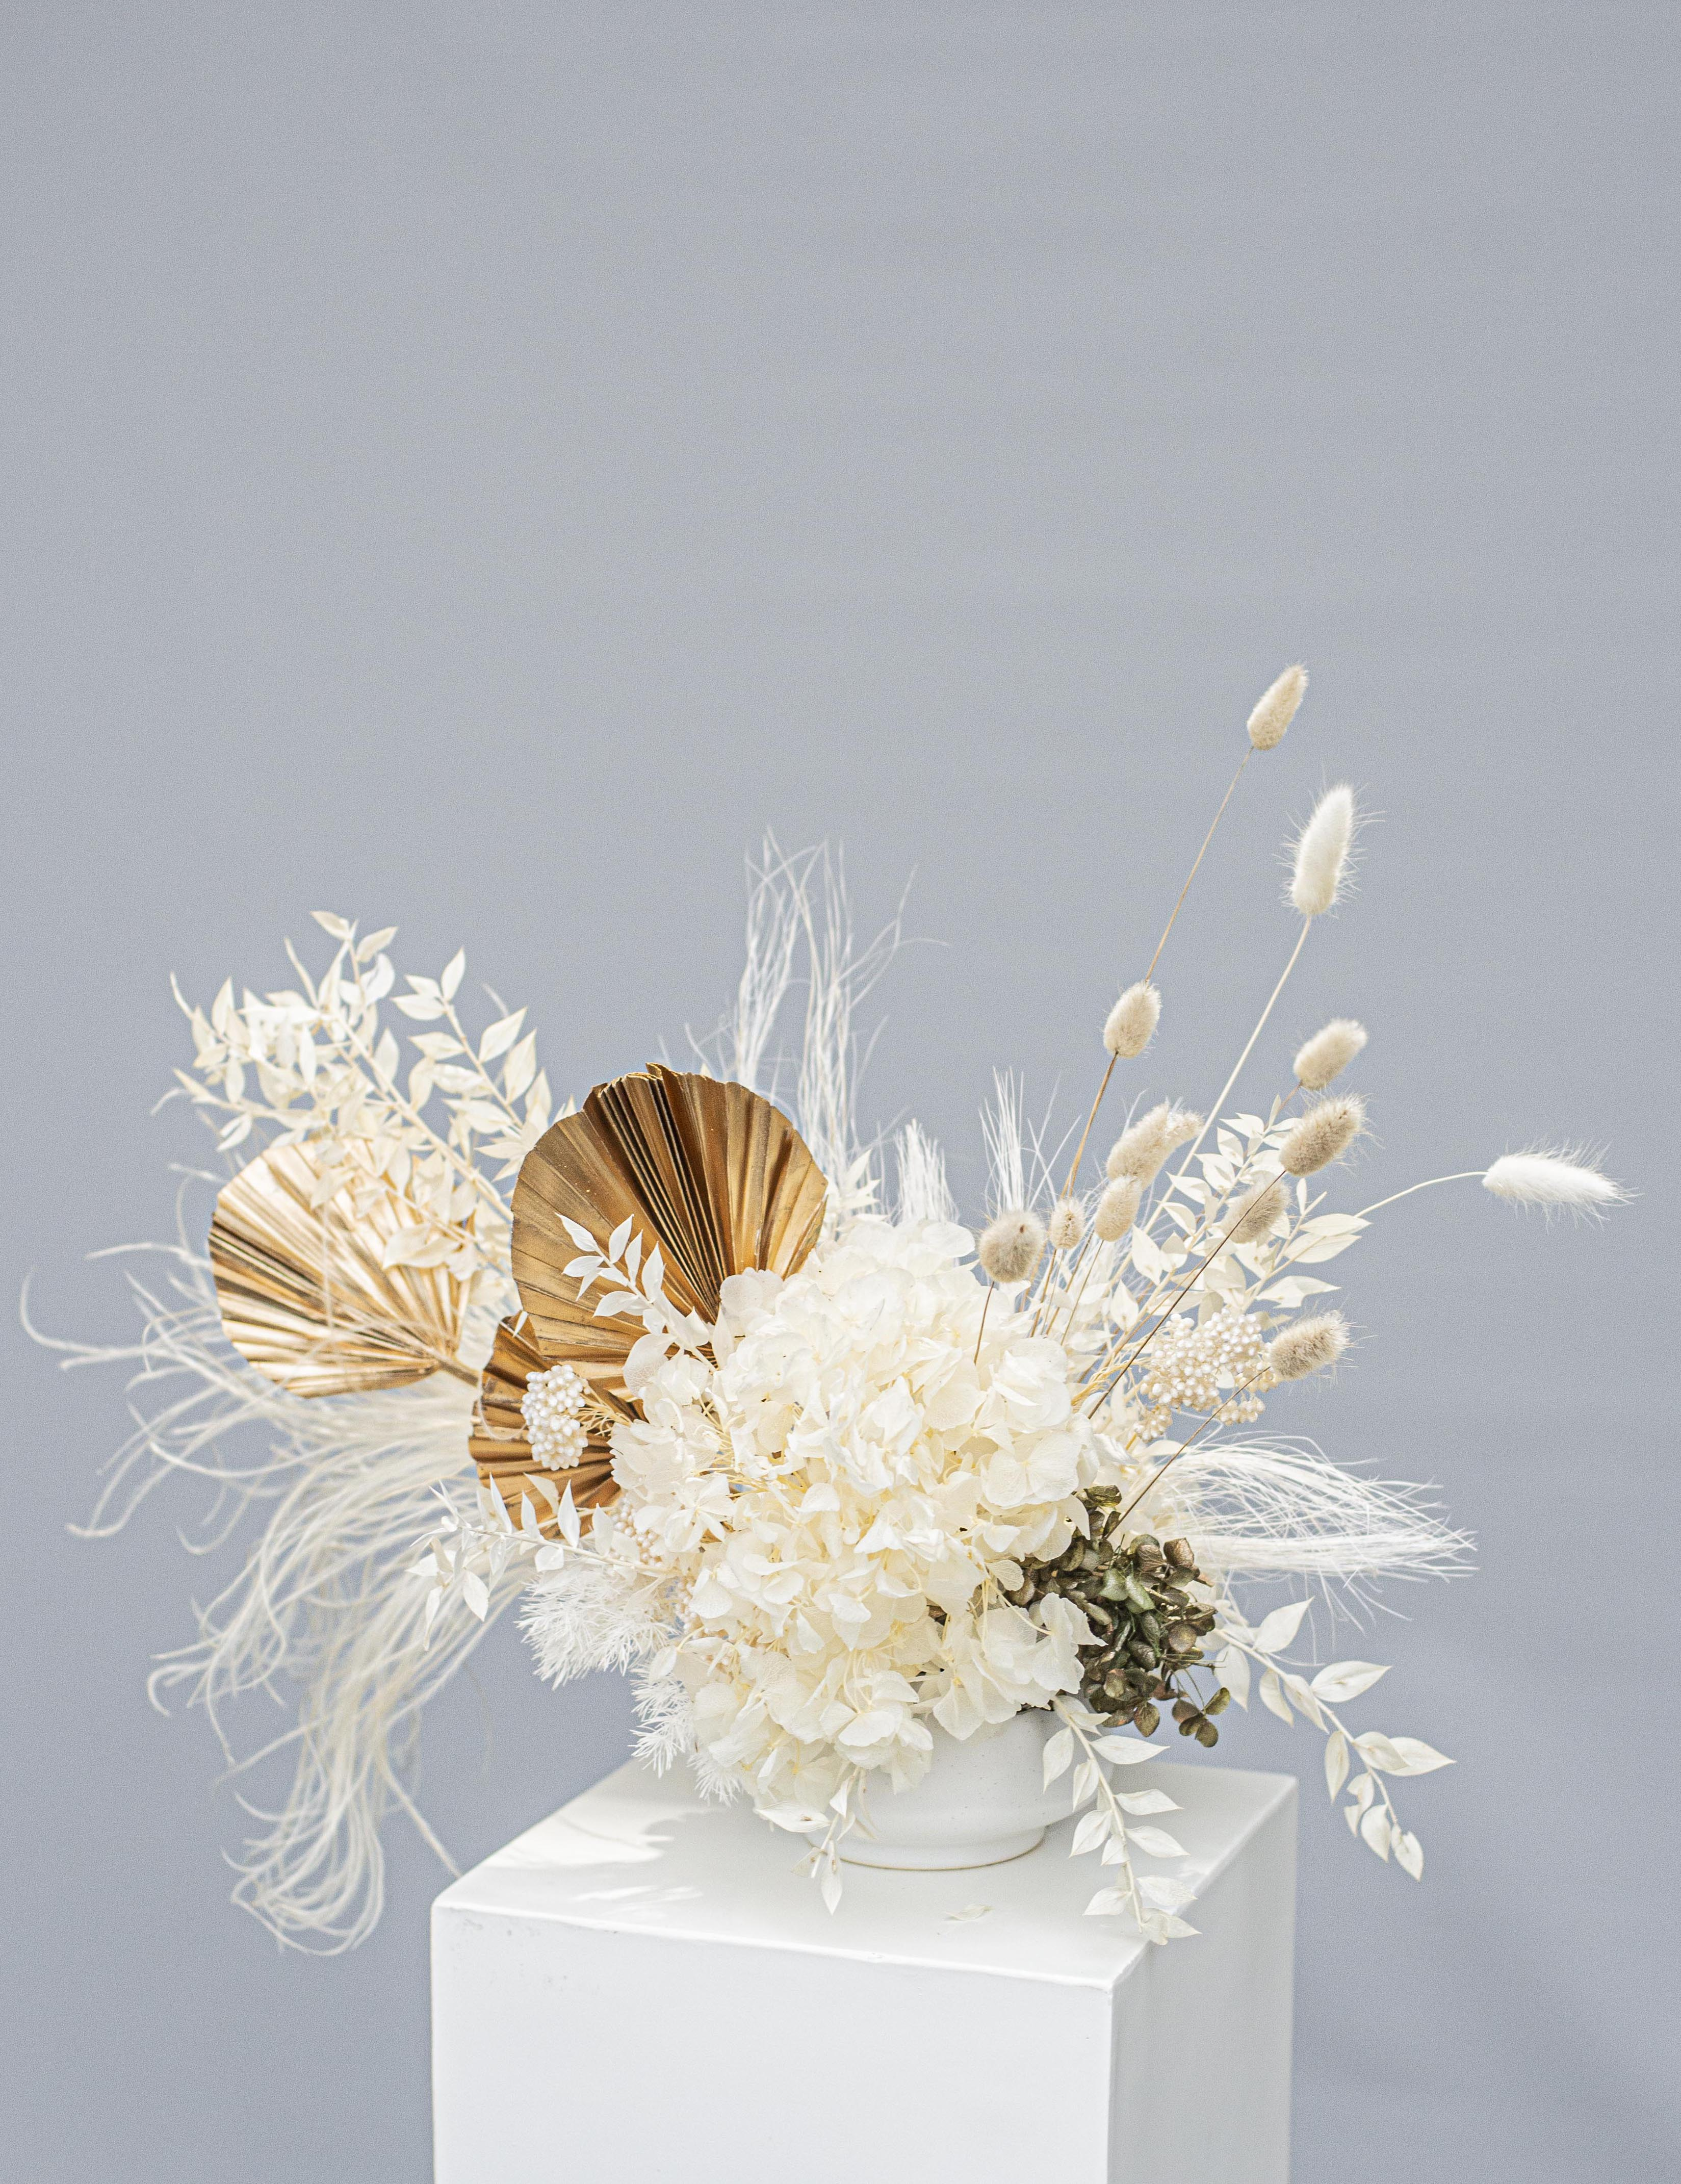 Dried / preserved reception table centrepiece